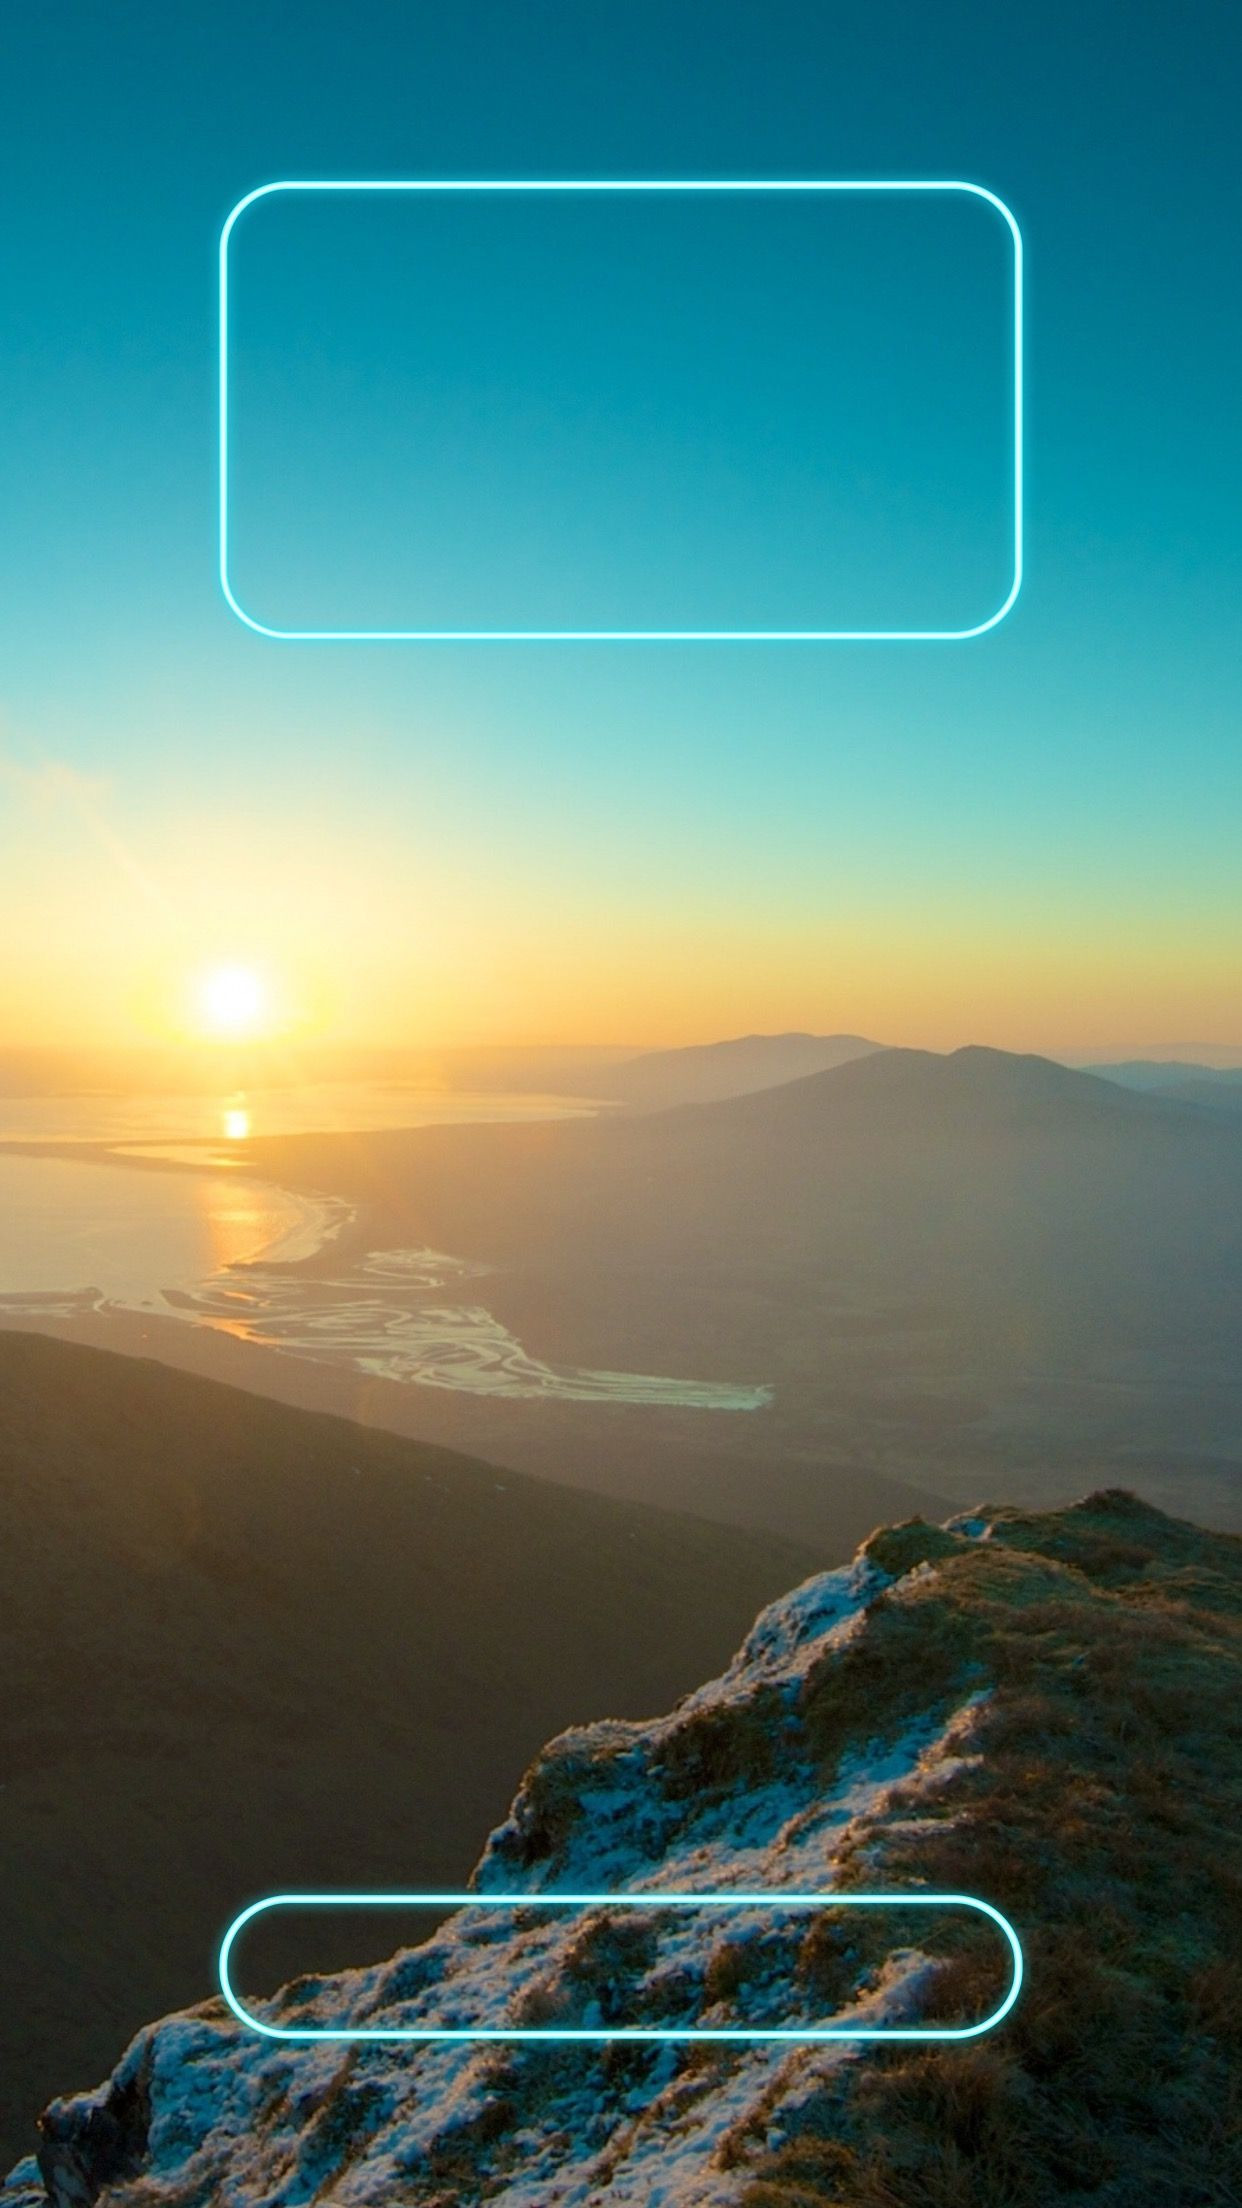 15 Wallpapers With Nature Views For The Iphone 6 Plus Phone